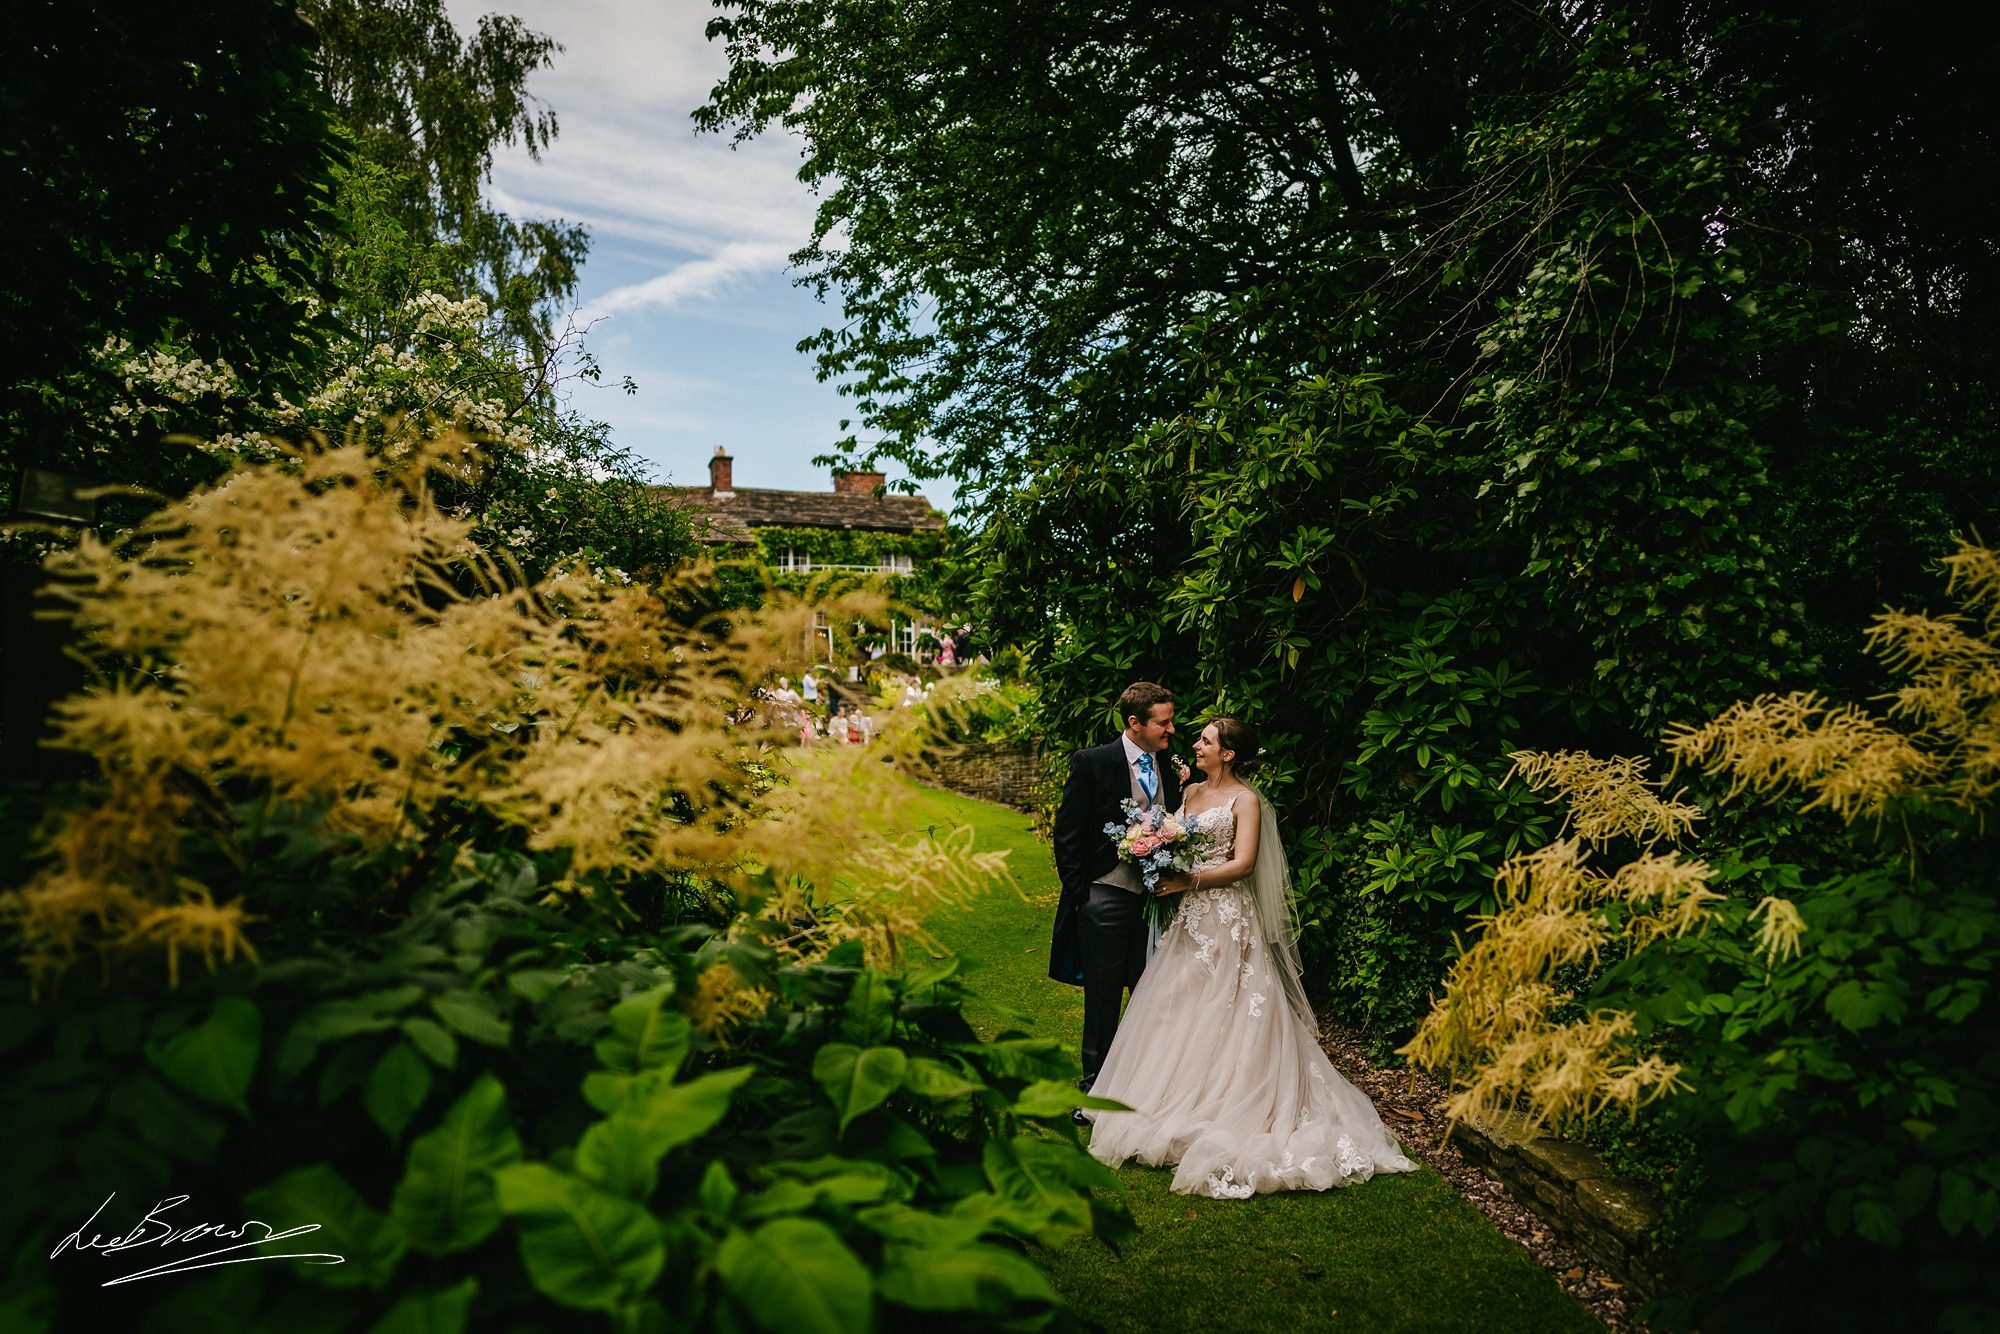 Hilltop Country House Wedding Photography – Megan & Paul